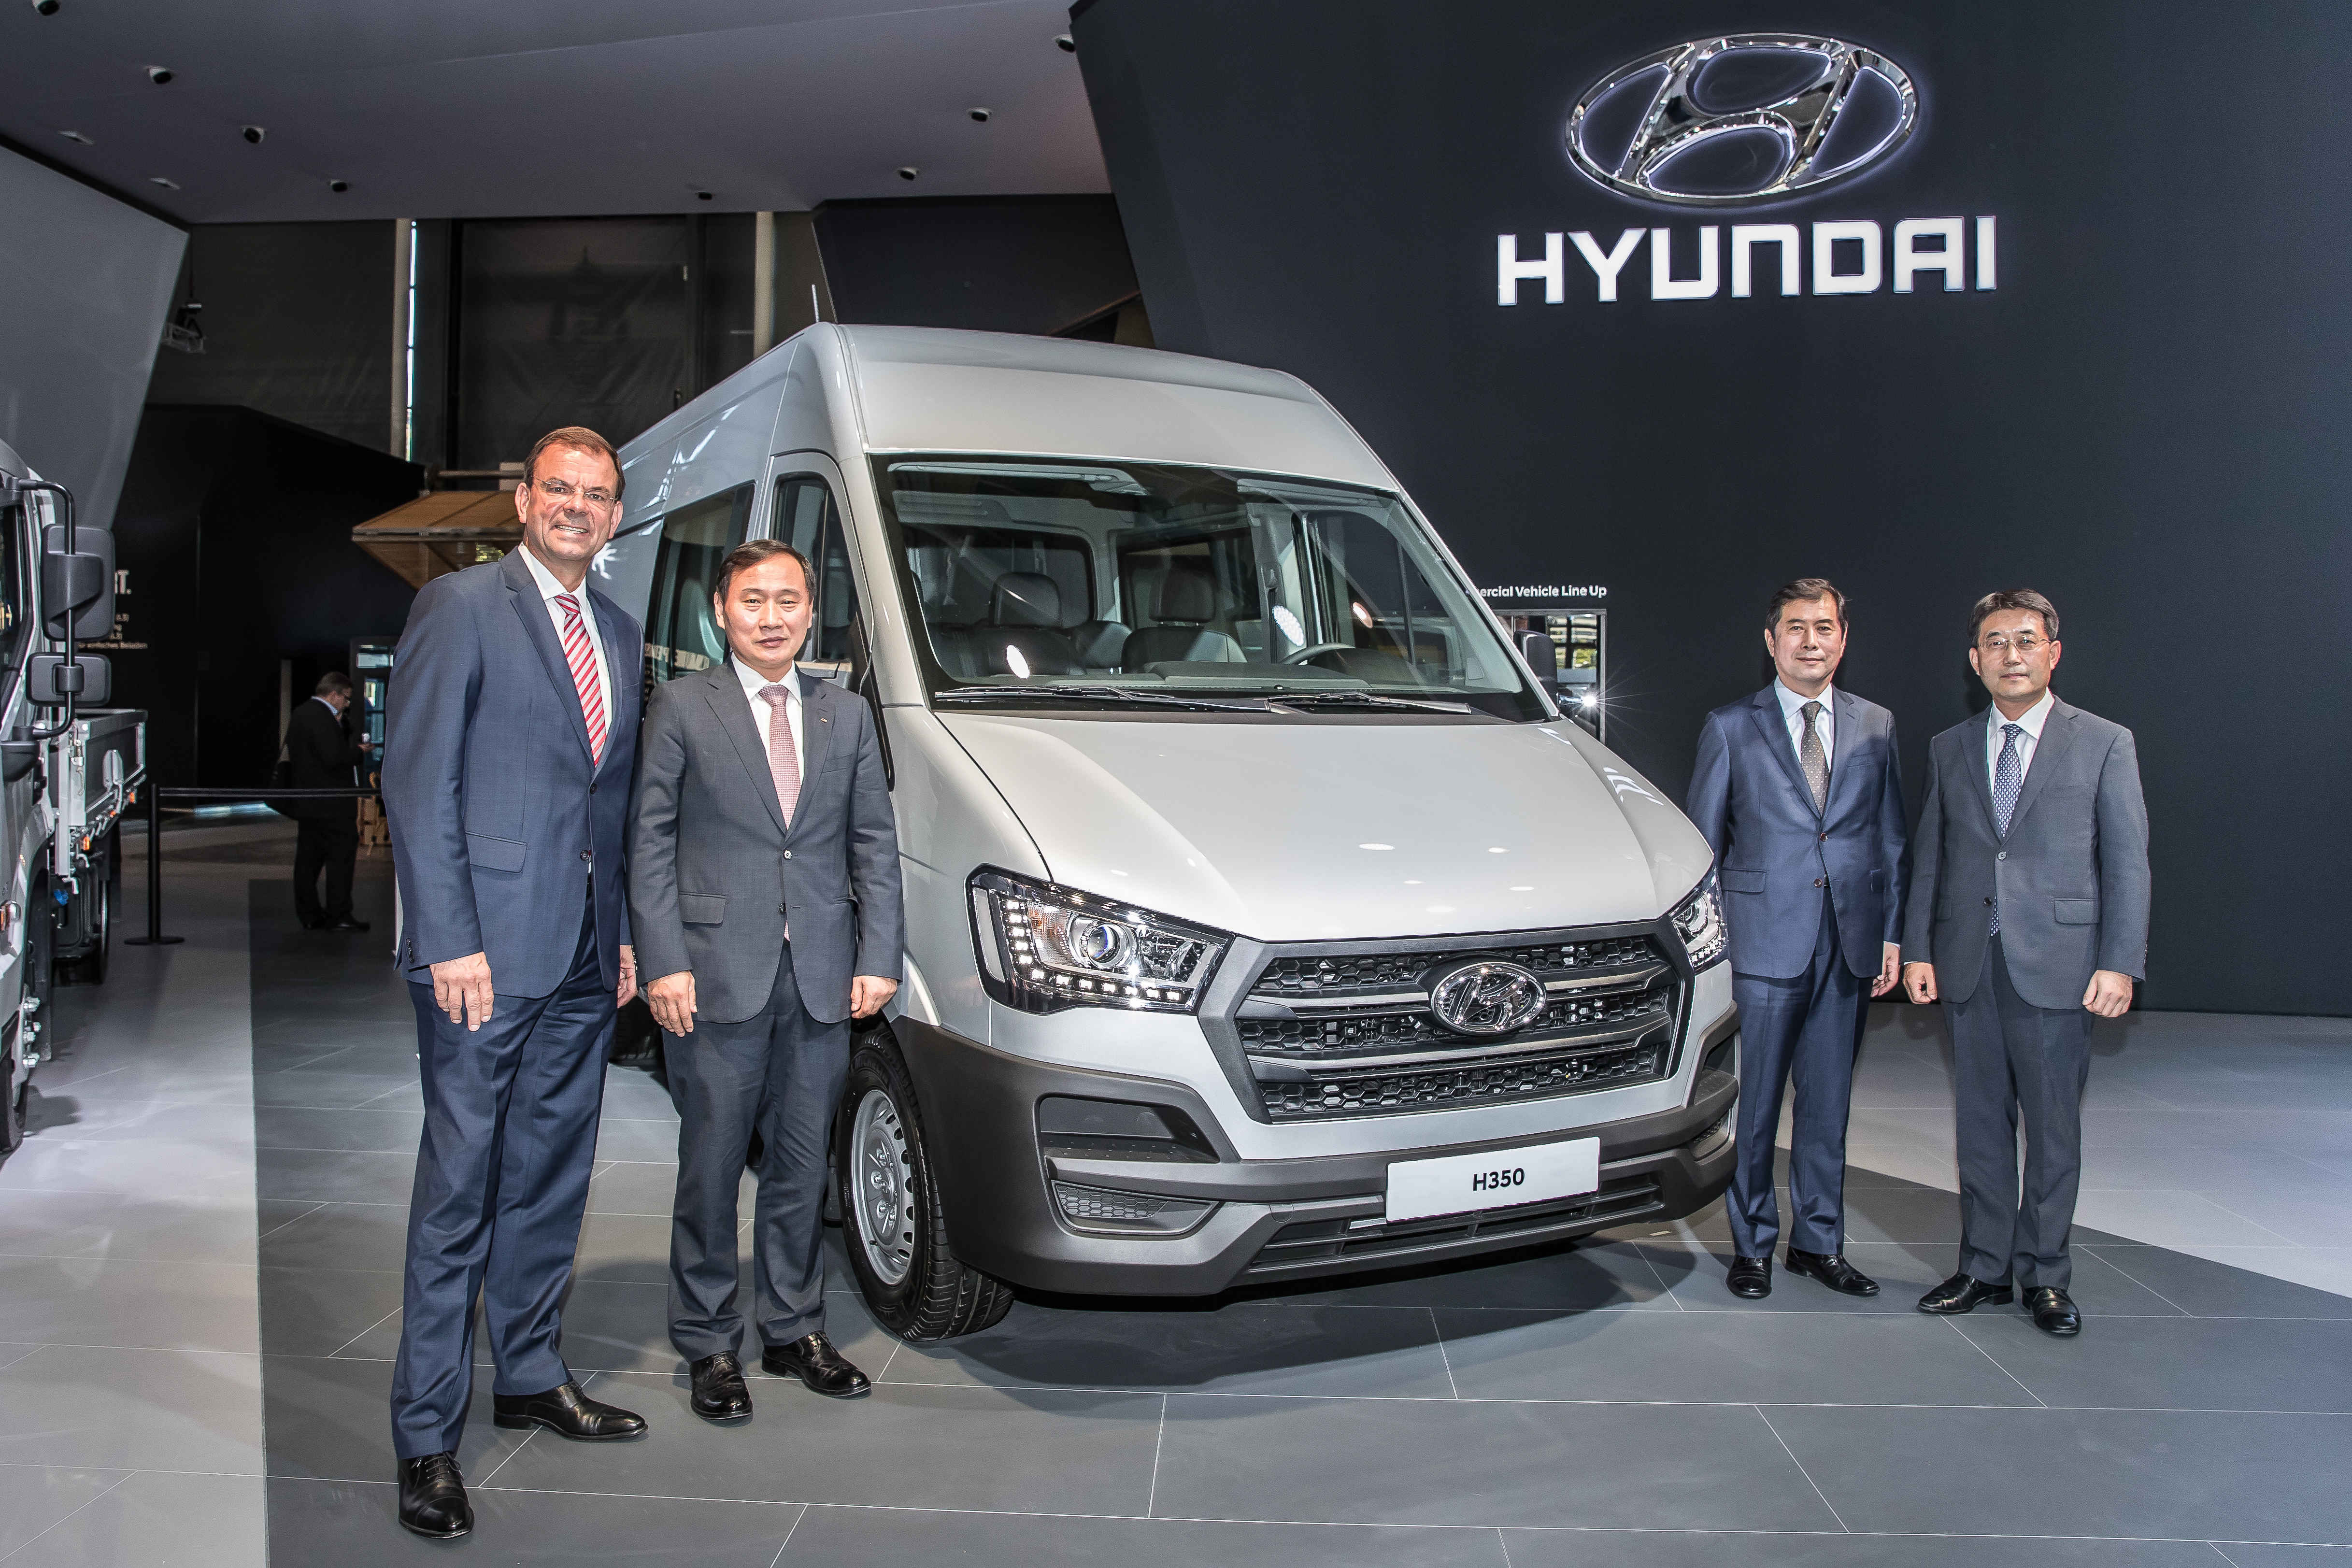 Markus Schrick, managing director of Hyundai Motor Germany, far left, and President Han Seong-kwon, head of commercial business division at Hyundai Motor, second from left, pose for a photo in front of the H350 Fuel Cell Concept at the 2016 IAA Commercial